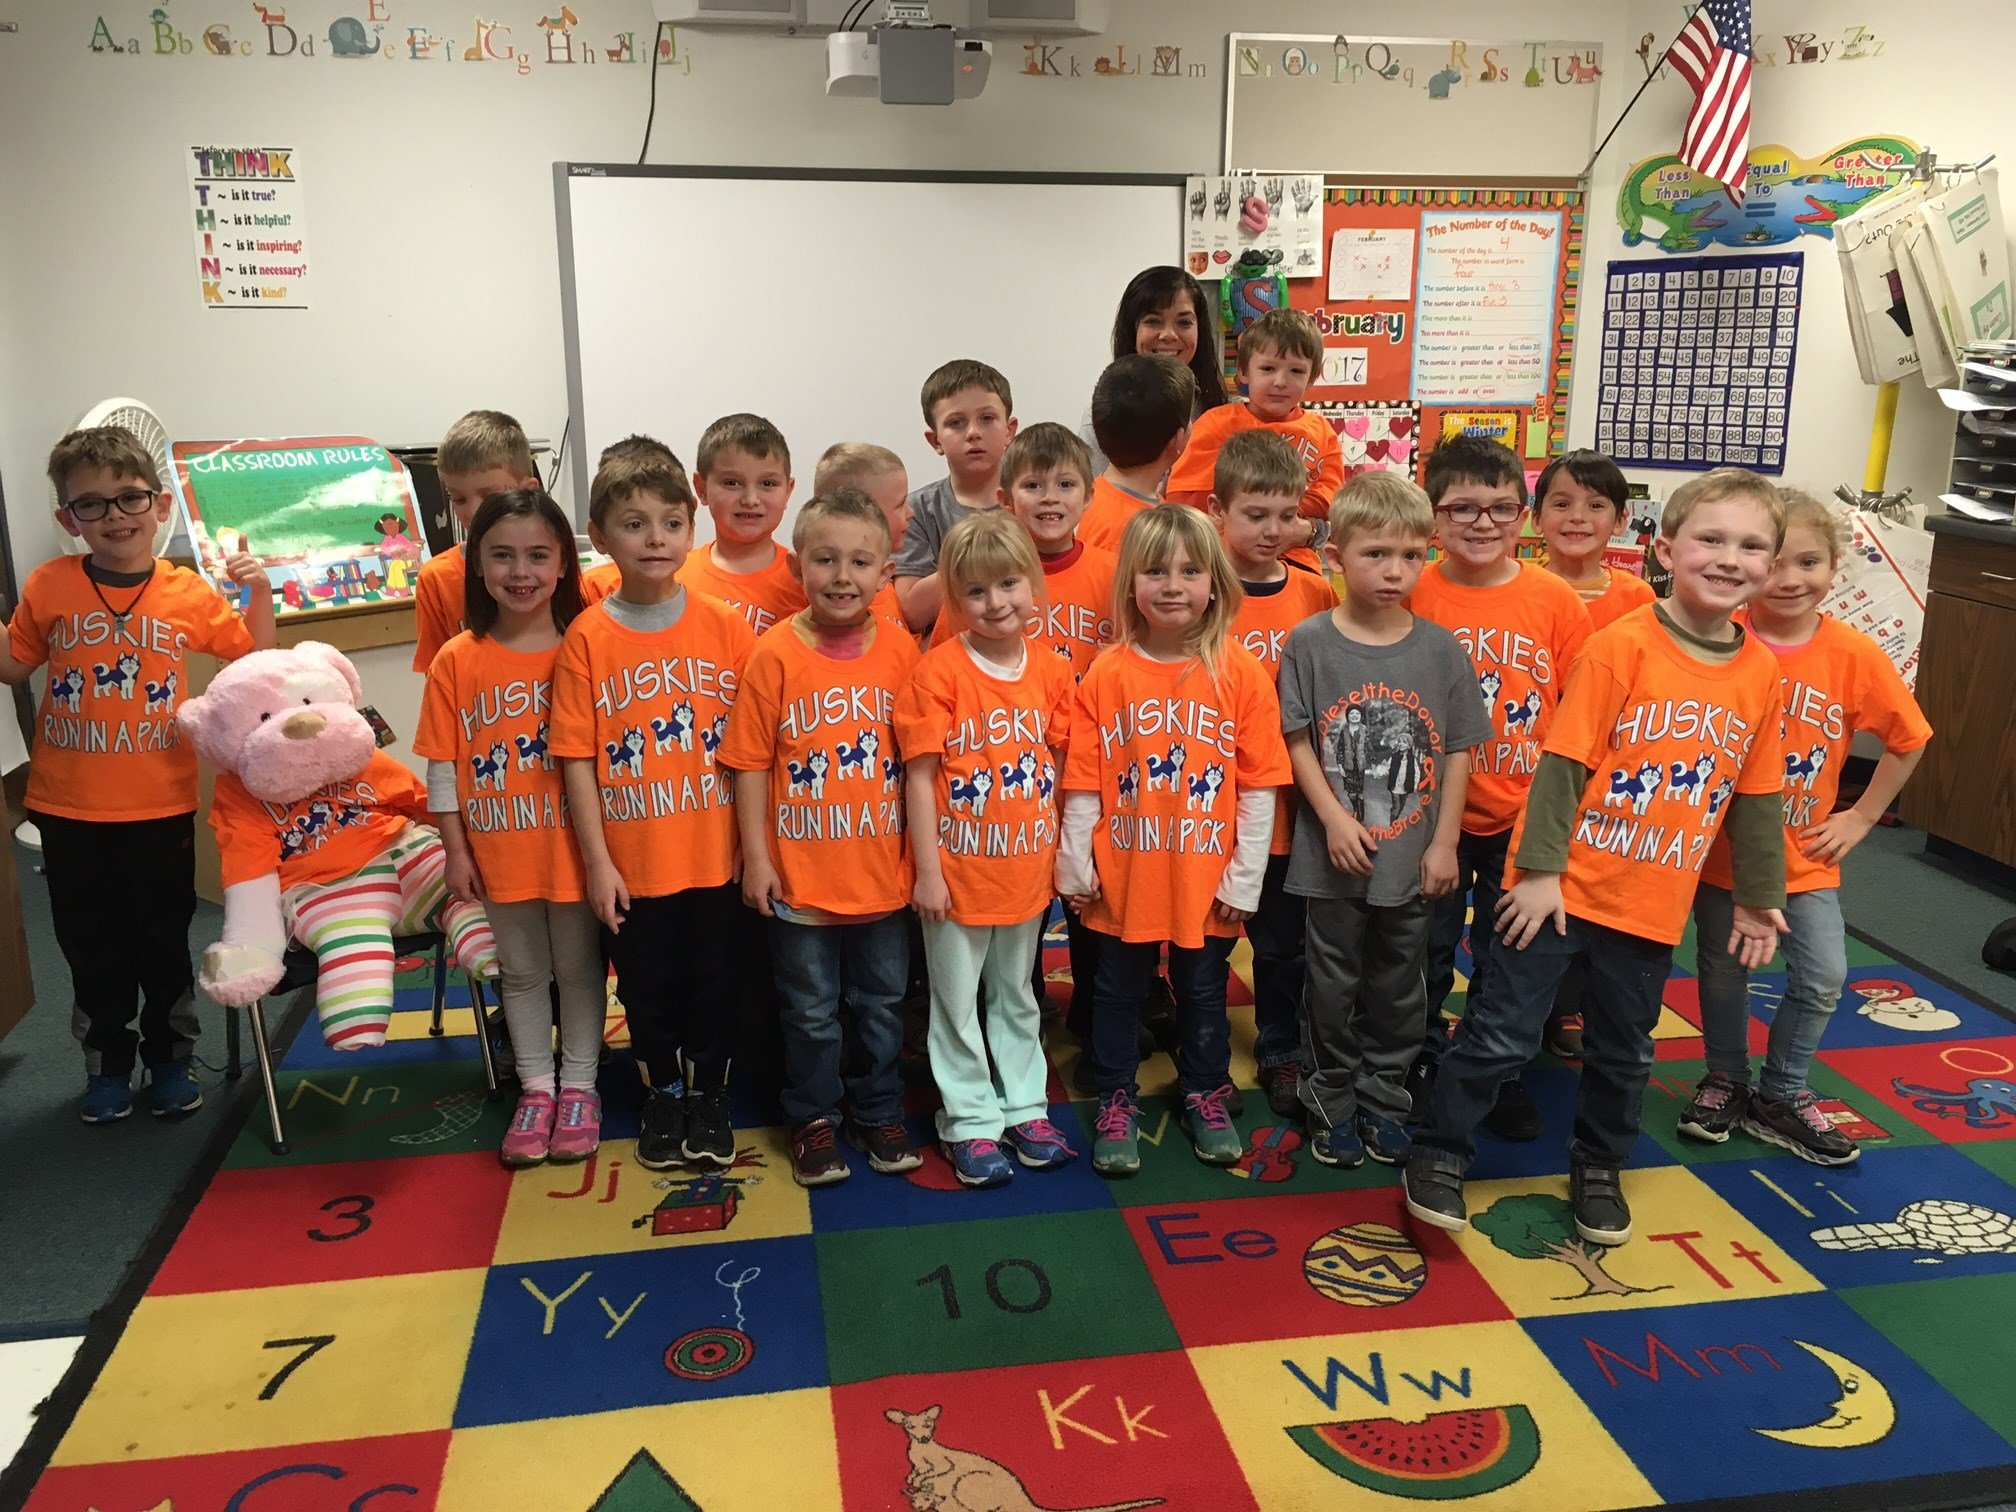 Students at Hemlock Elementary wear shirts in honor of Brinley.